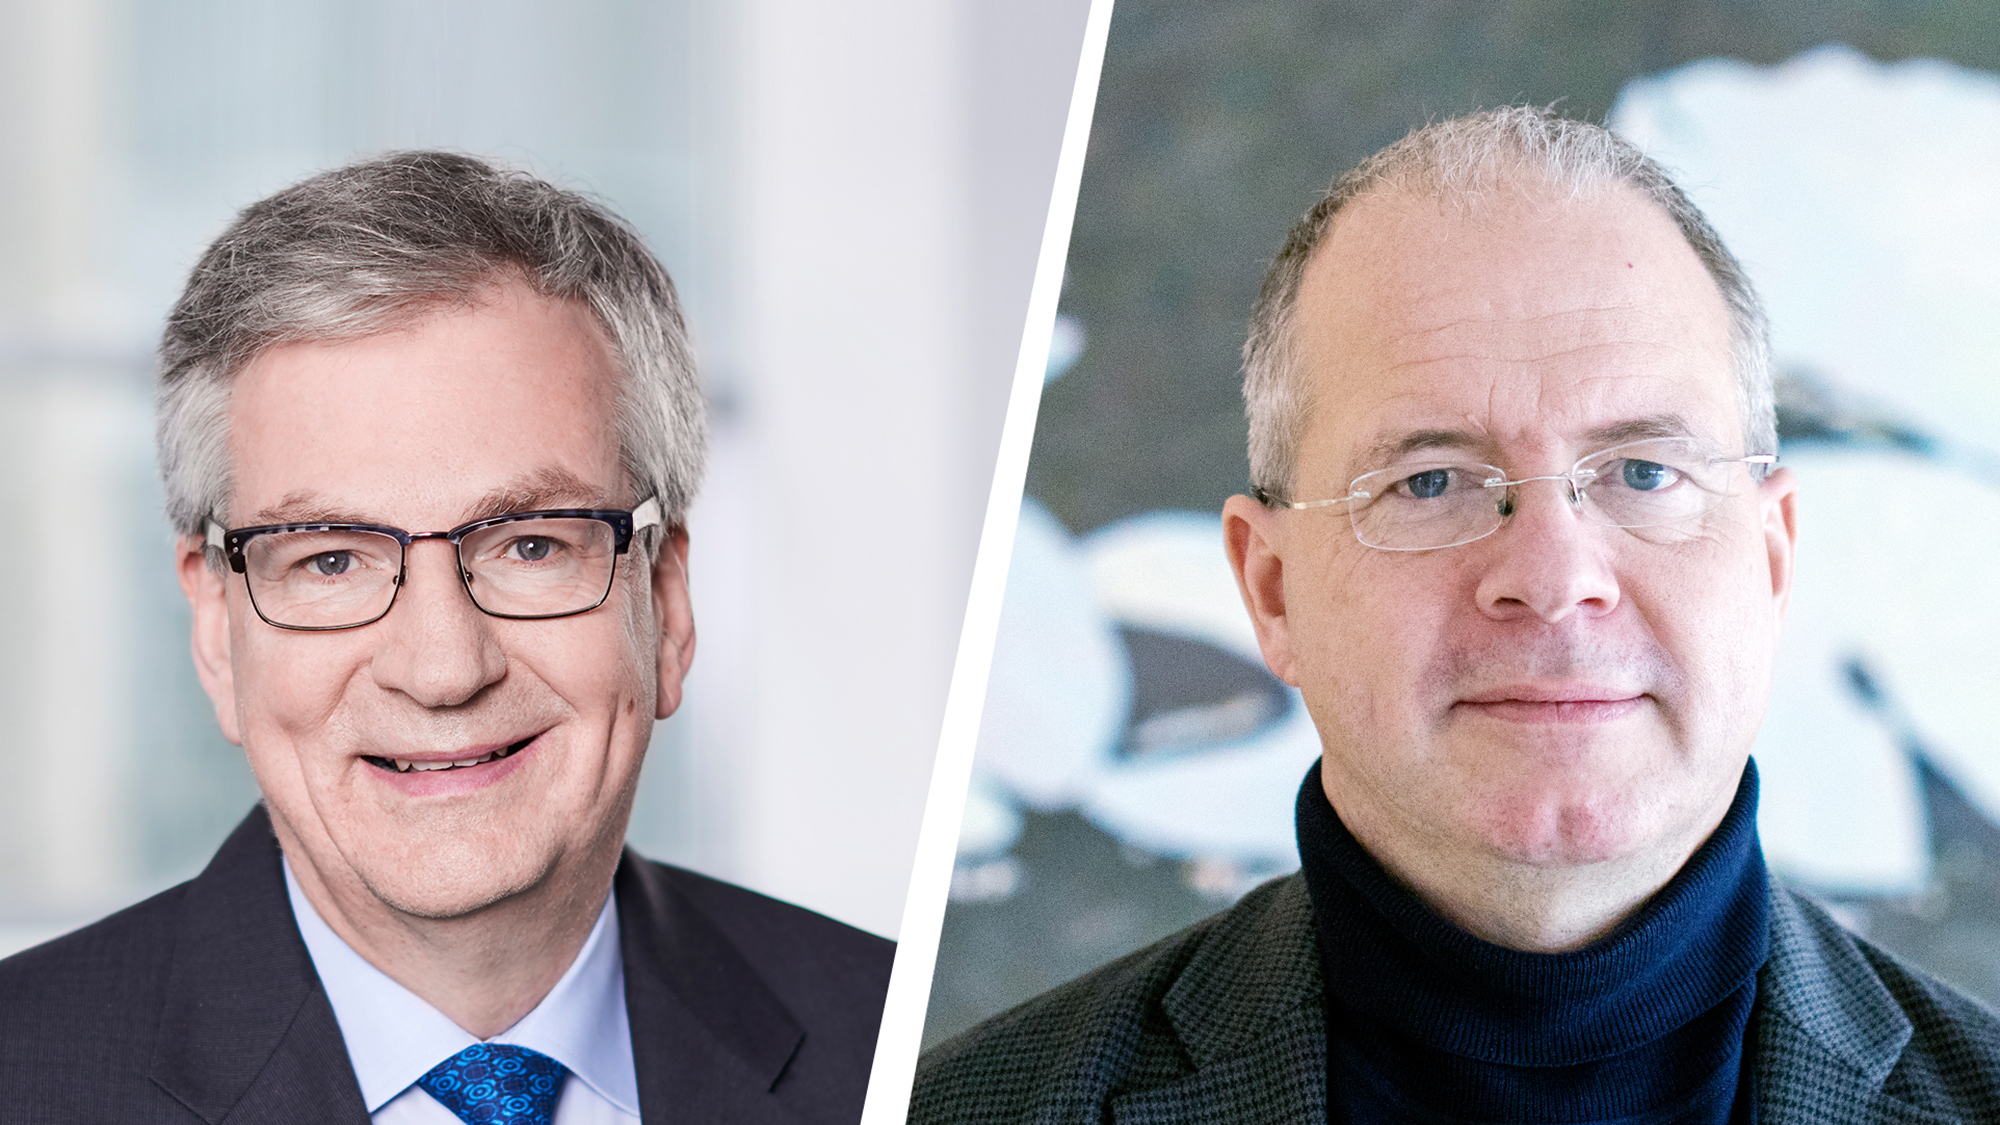 Martin Daum, Chairman of the Board of Management Dai mler Truck AG and Member of the Board of Management of Daimler AG (left) with Martin Lundstedt, Volvo Group President and CEO